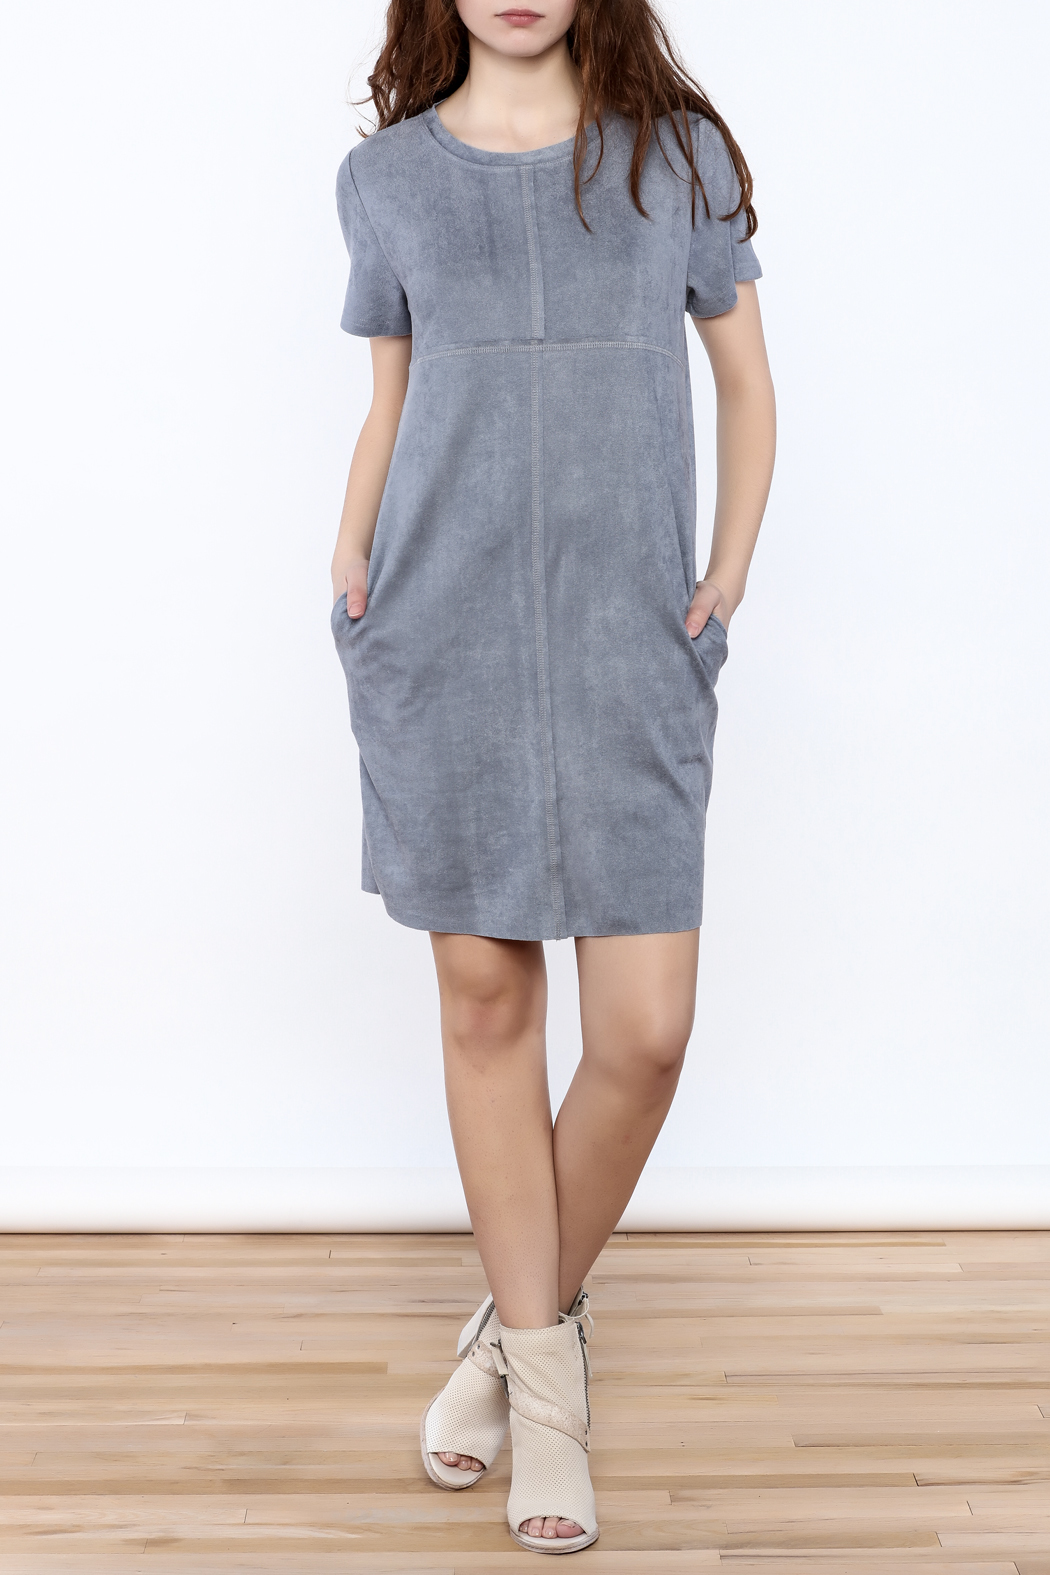 JOH Faux Suede Shift Dress - Front Full Image